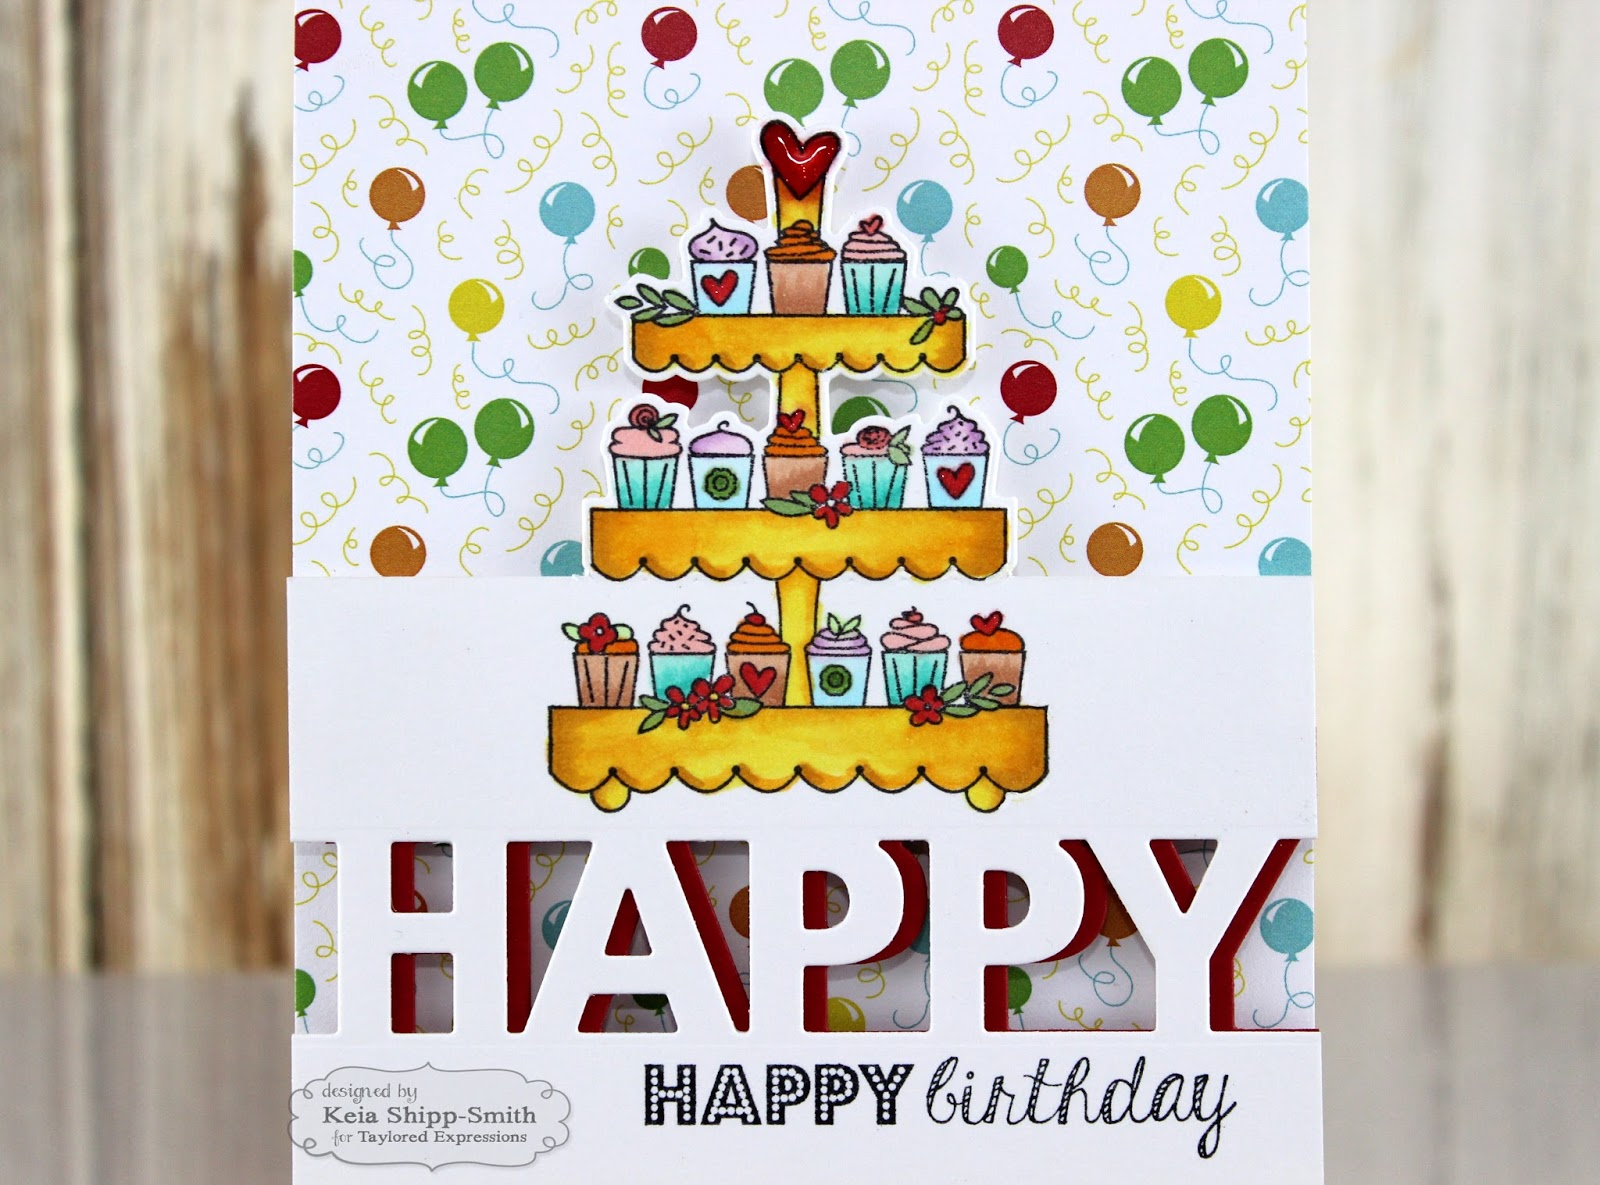 For More Crafty Inspiration Visit The Taylored Expressions Blog